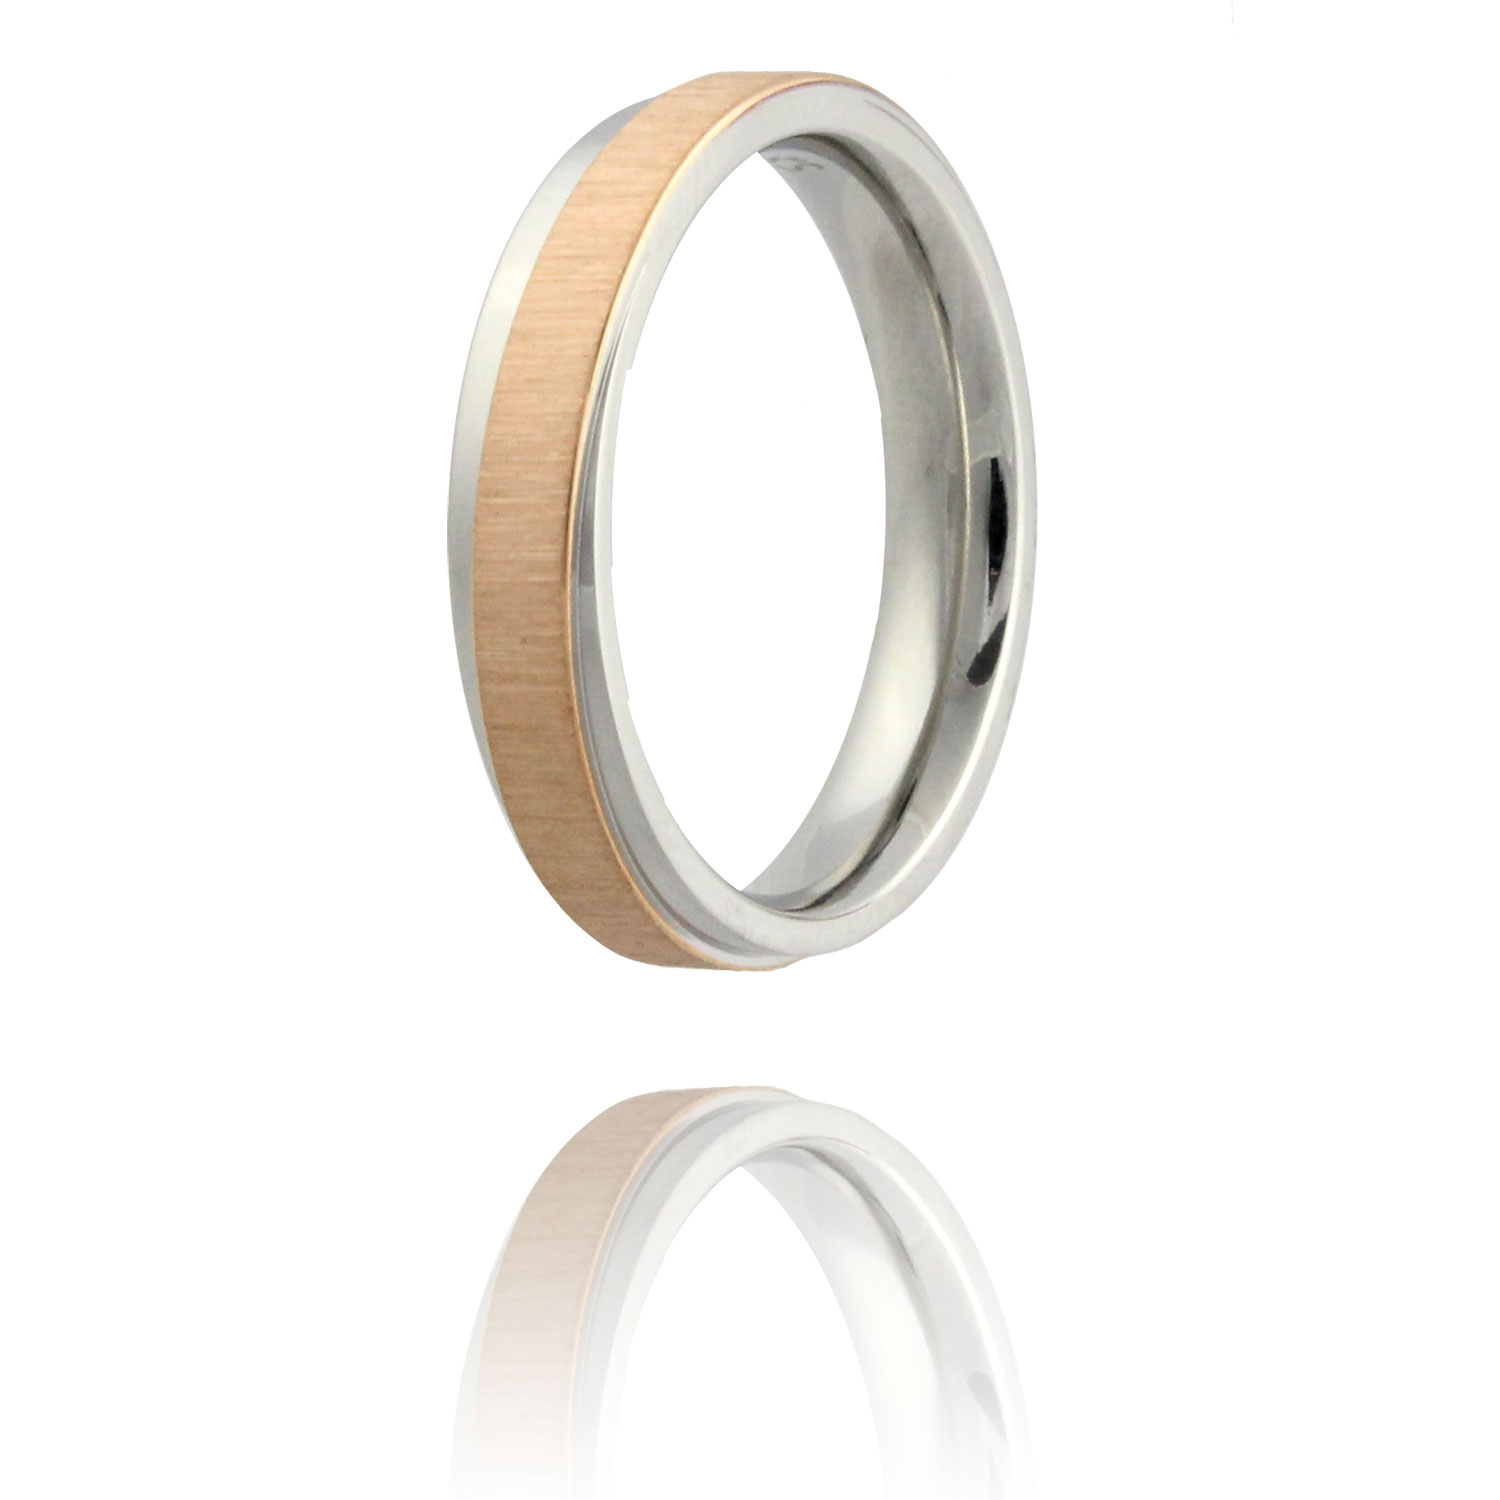 Abstract 316L Stainless Steel & Rose Gold Plated Double Texture Ring - Size 6.5